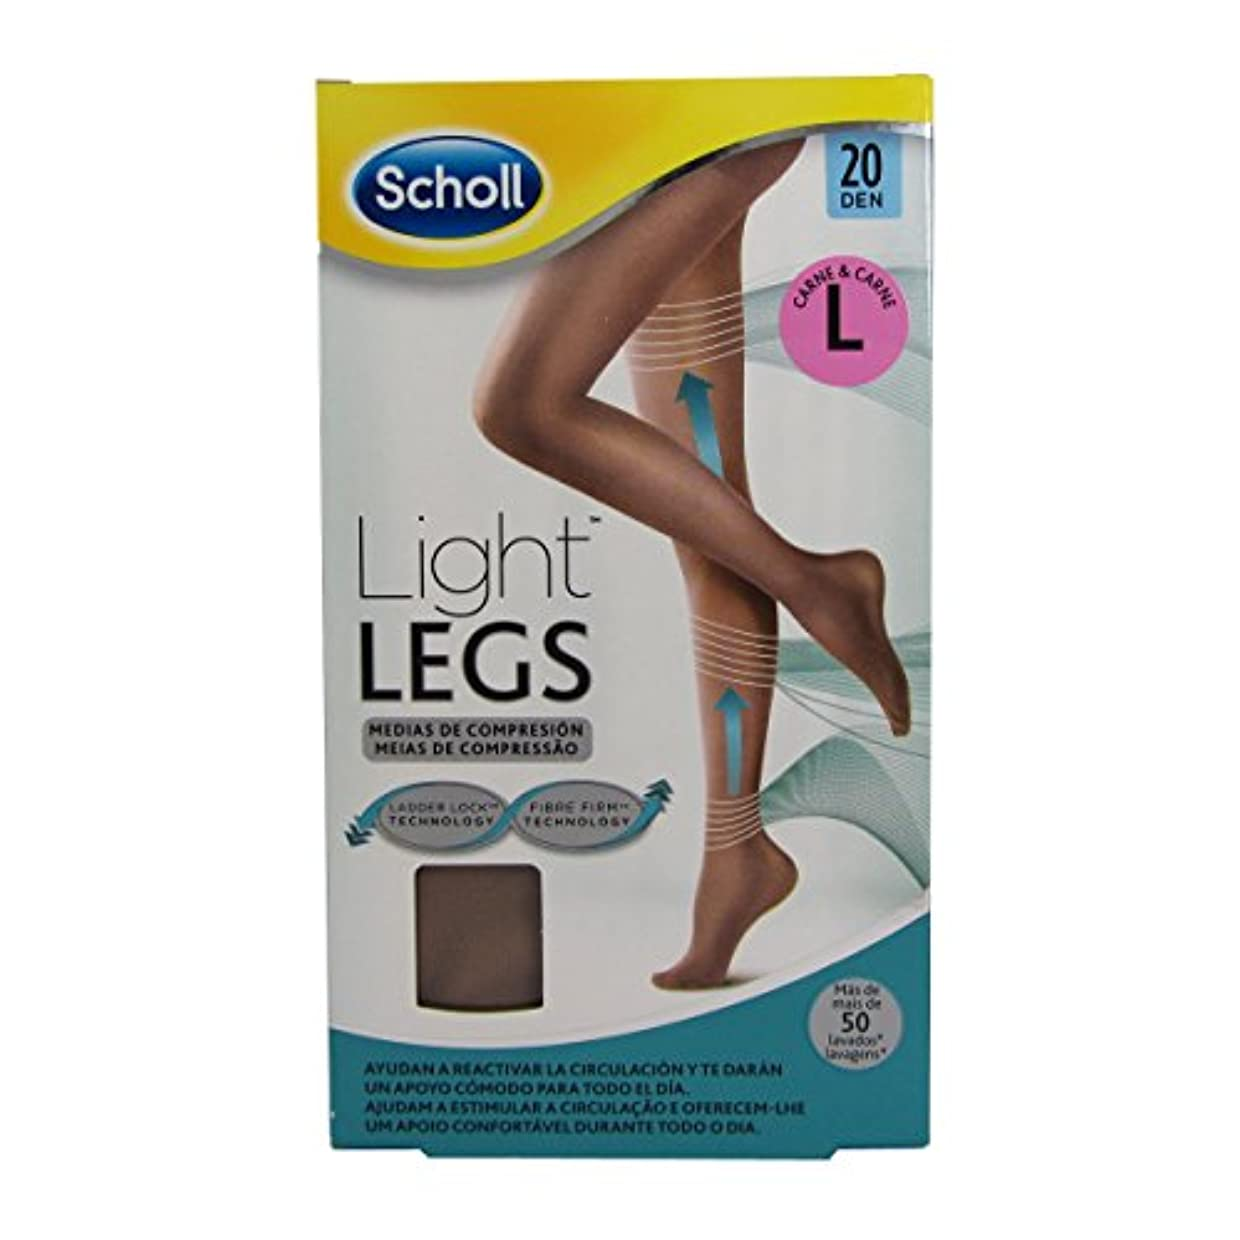 Scholl Light Legs Compression Tights 20den Skin Large [並行輸入品]